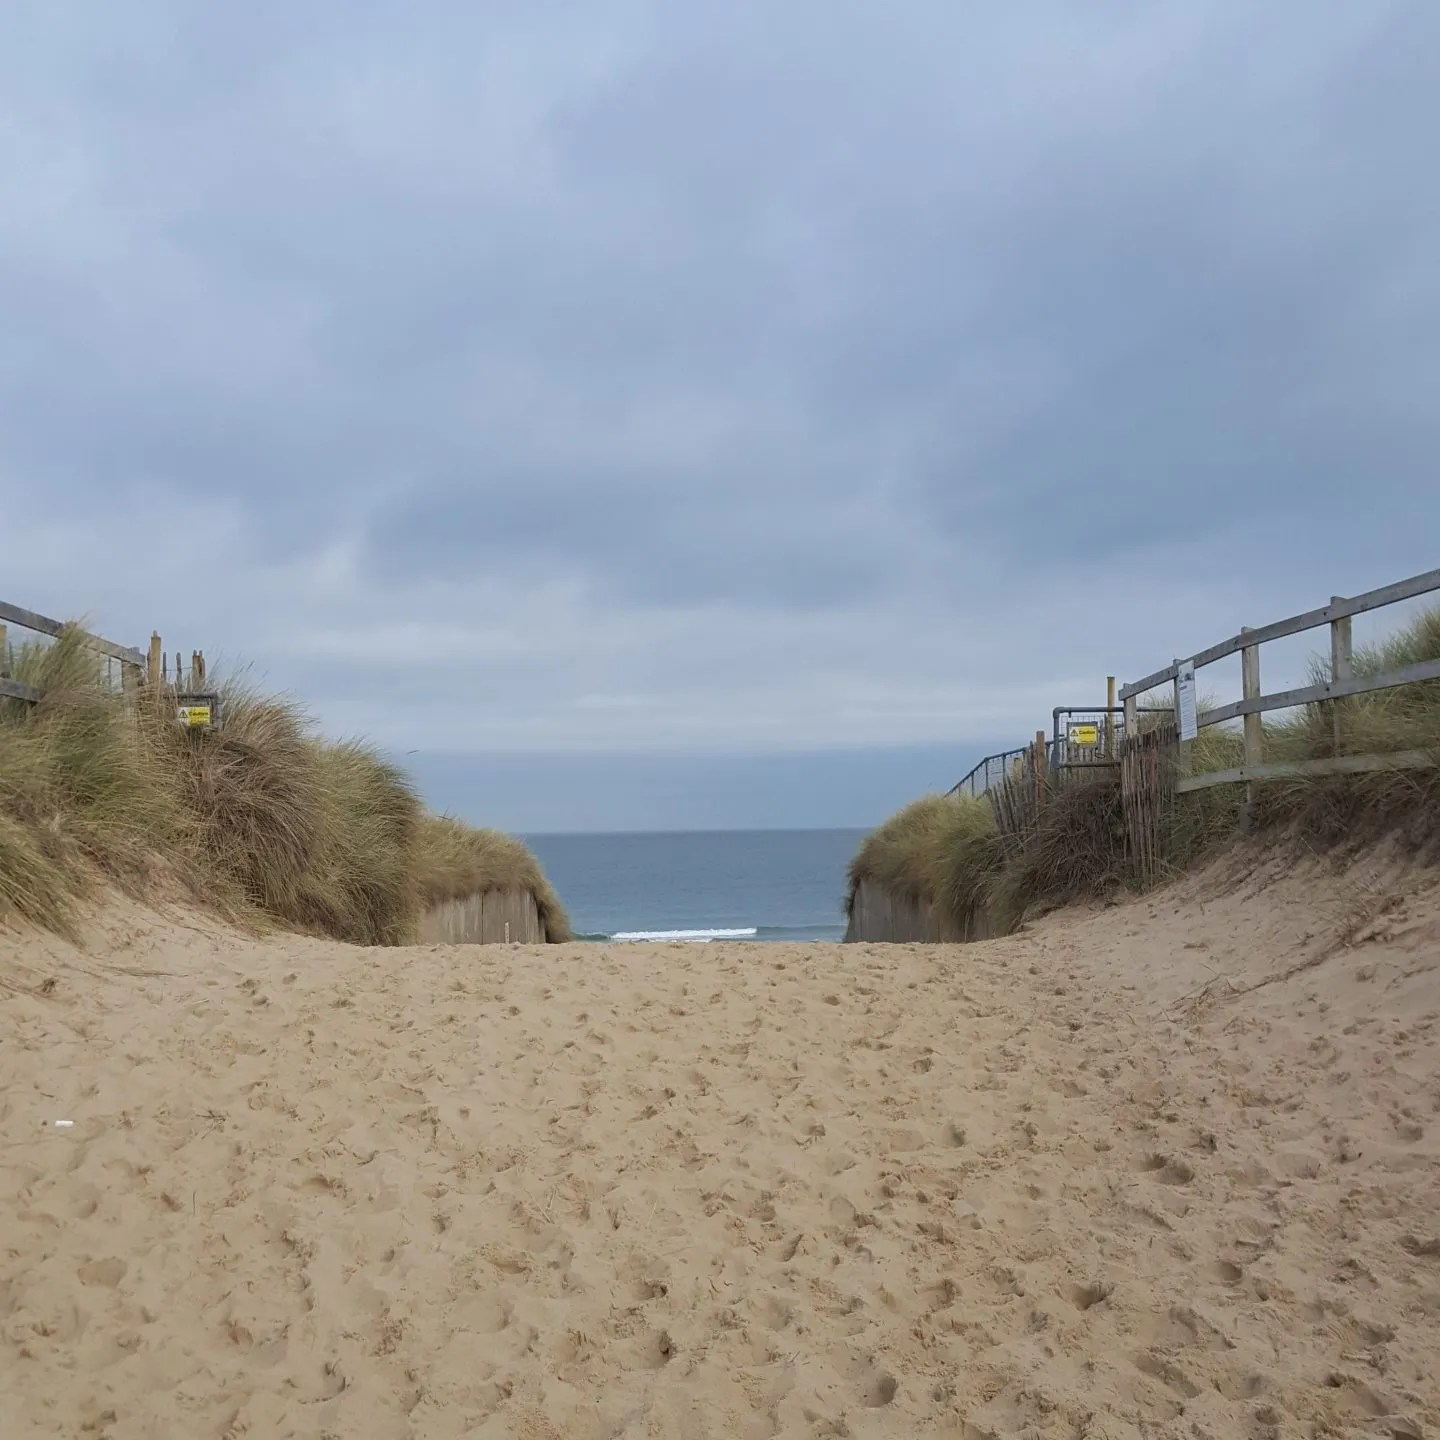 Horsey Gap sand dune with a sea view